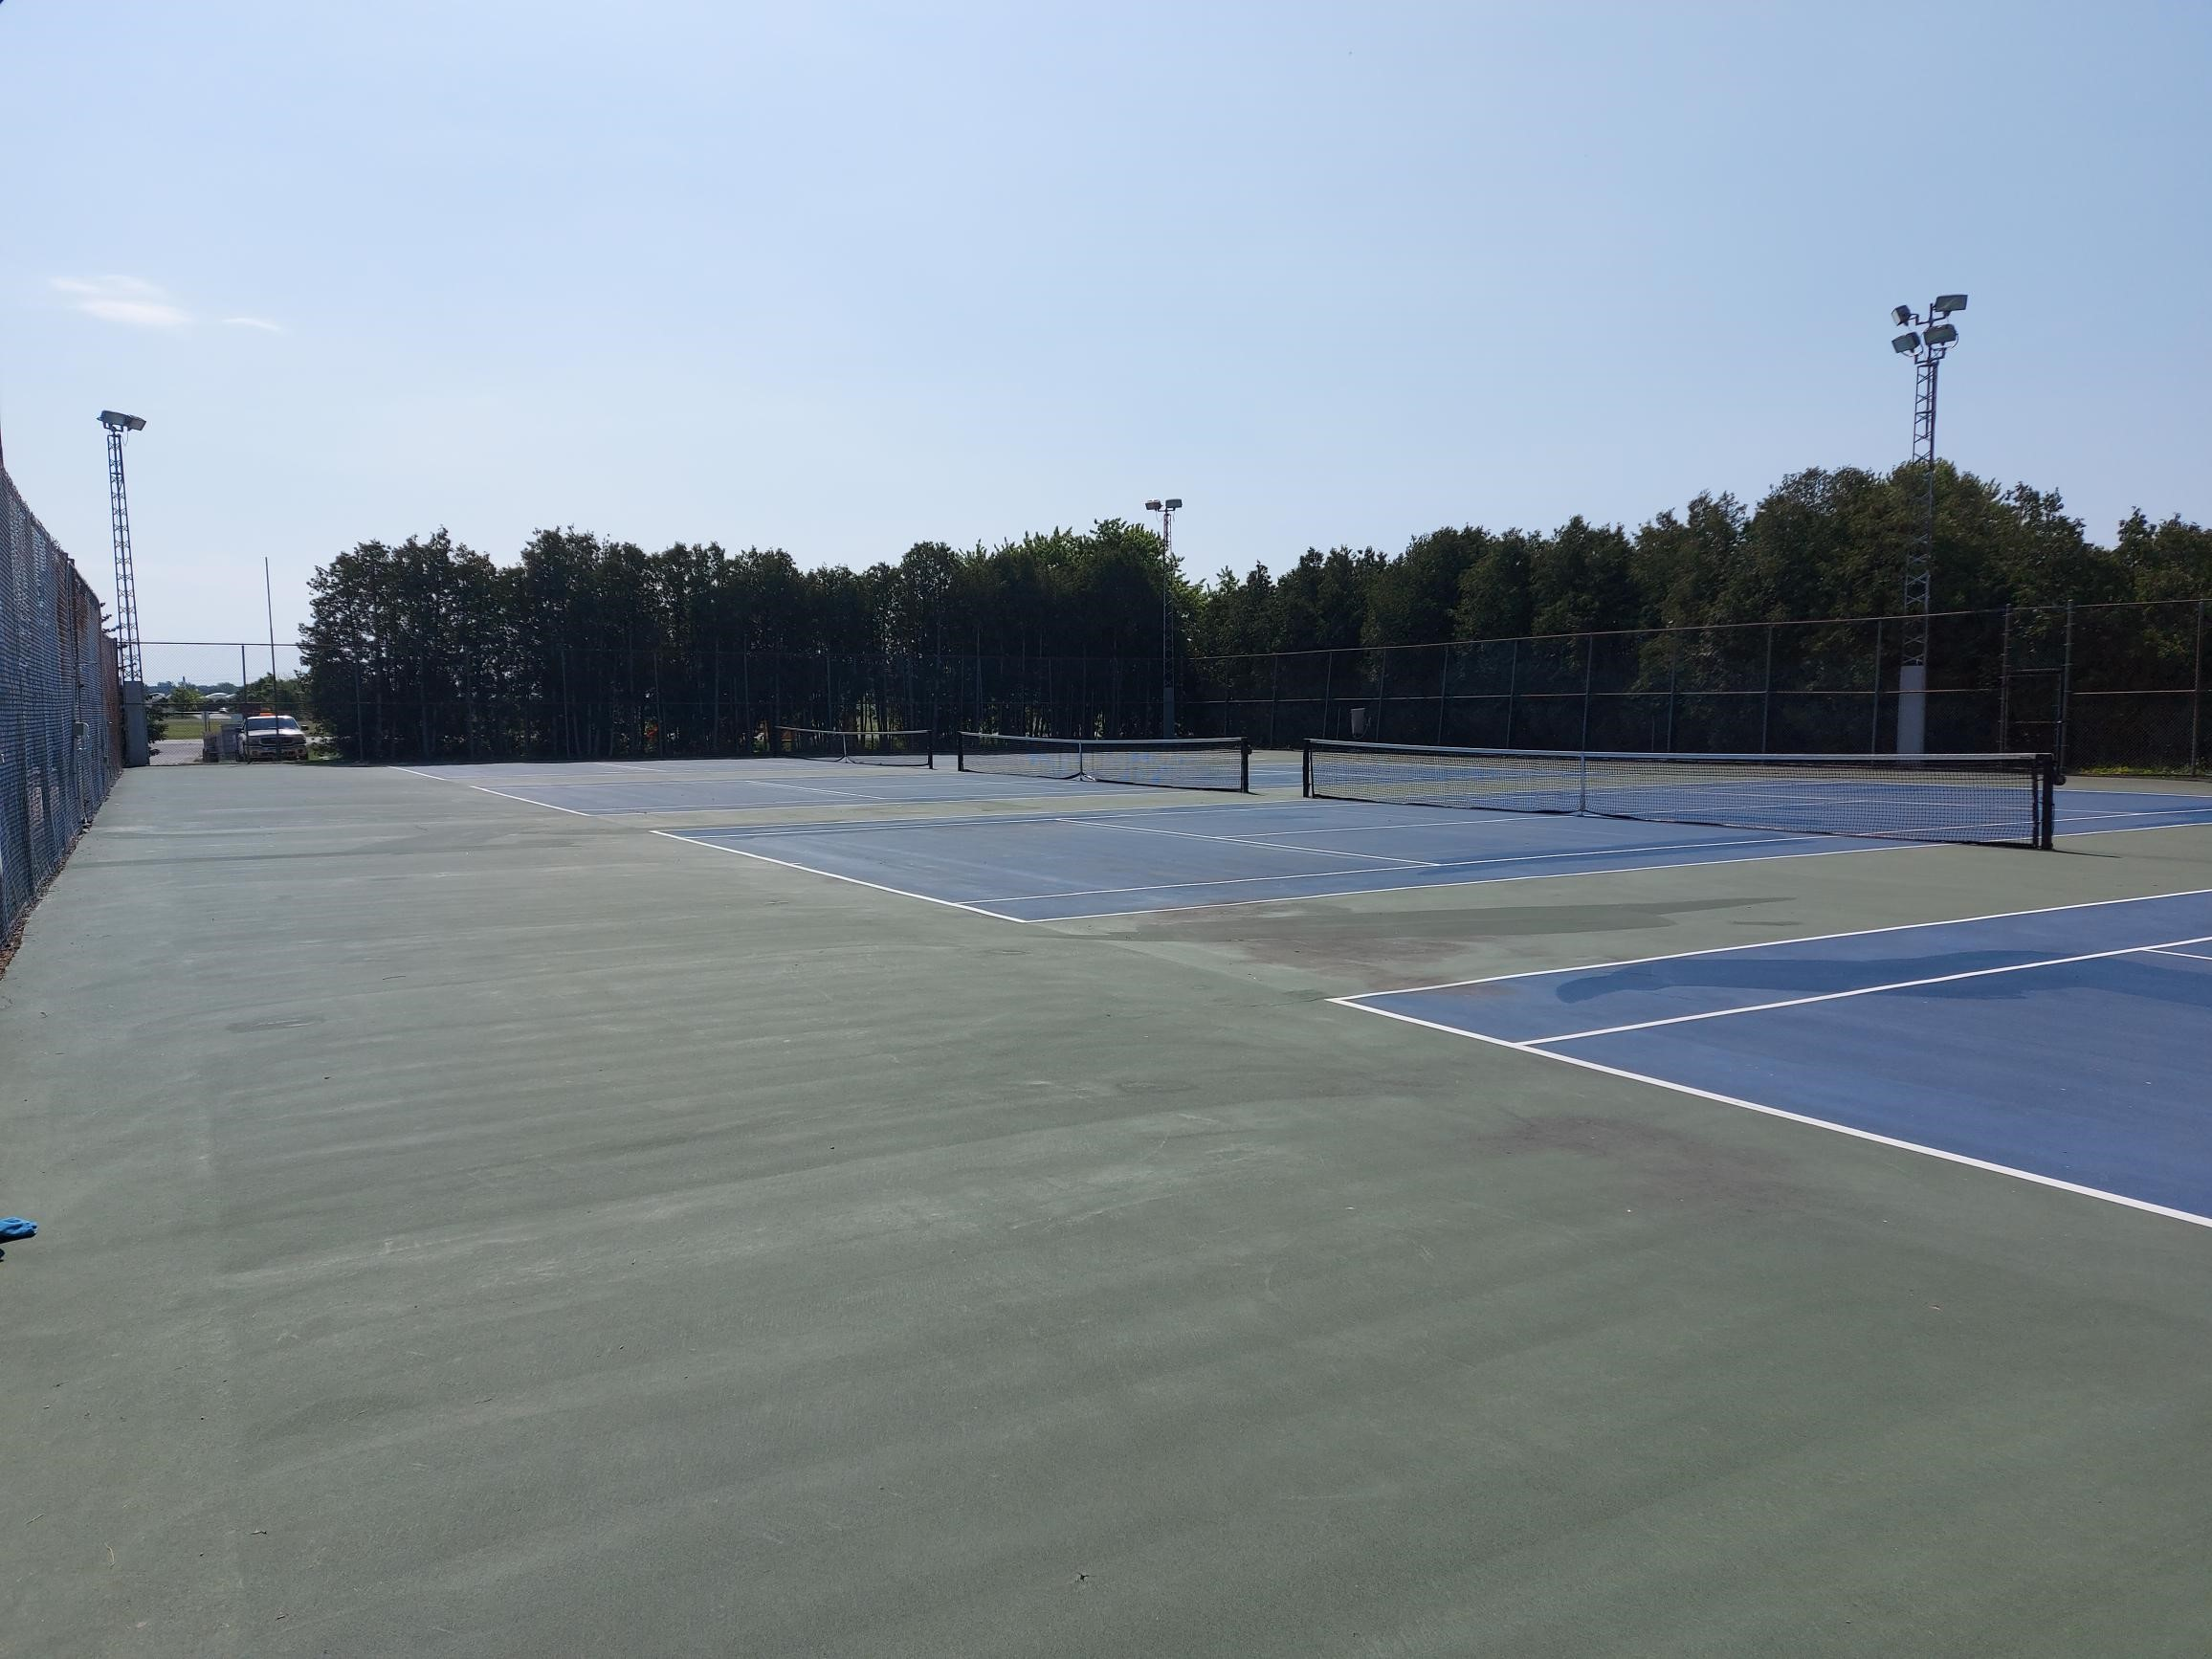 Tennis court at the Kingsville Recreation Complex